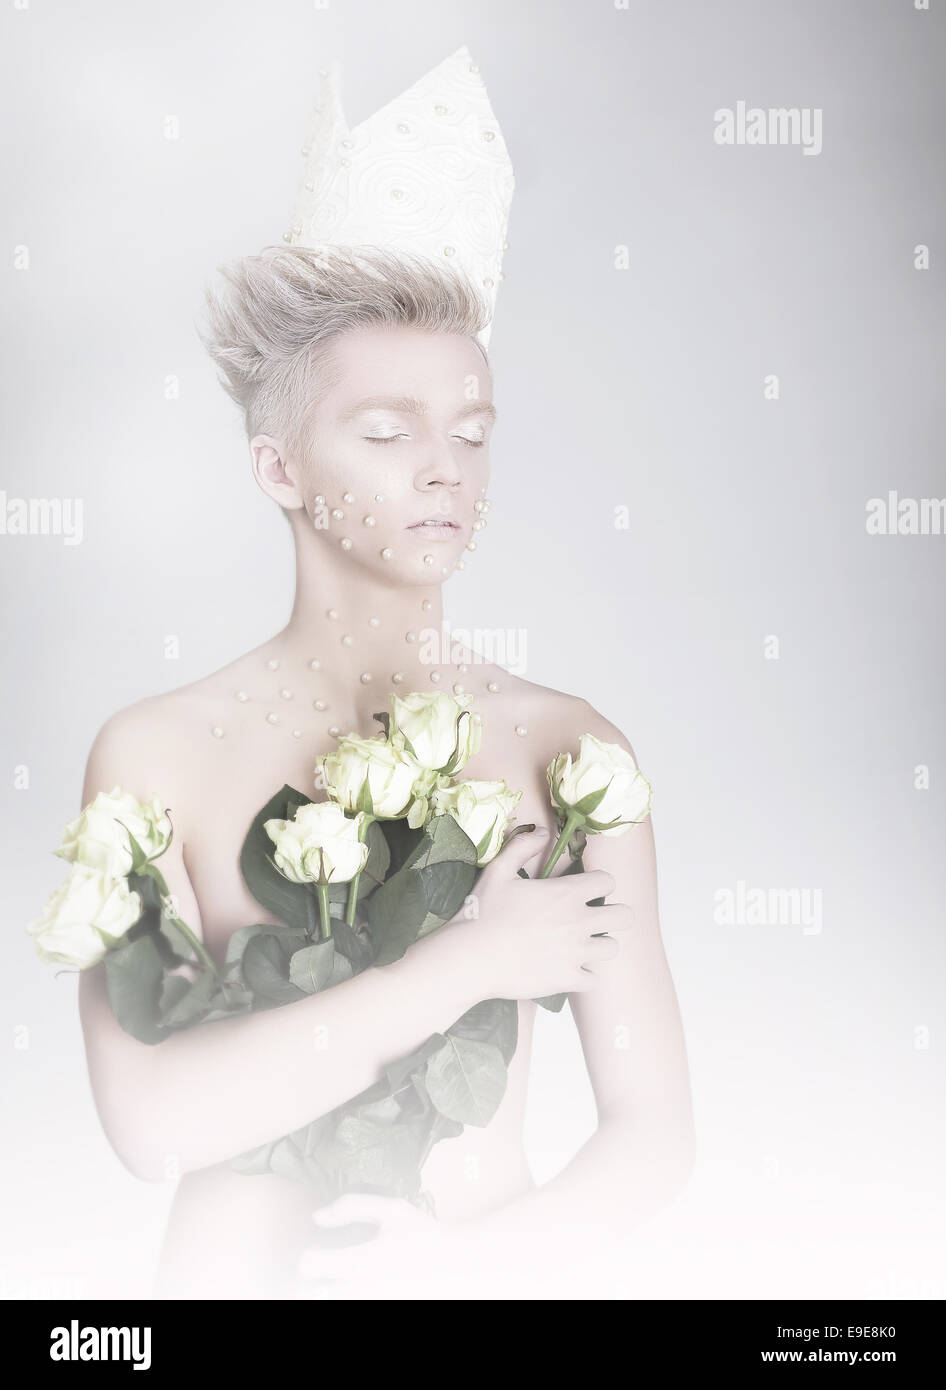 Daydreaming Man holding Bouquet of Flowers - Stock Image